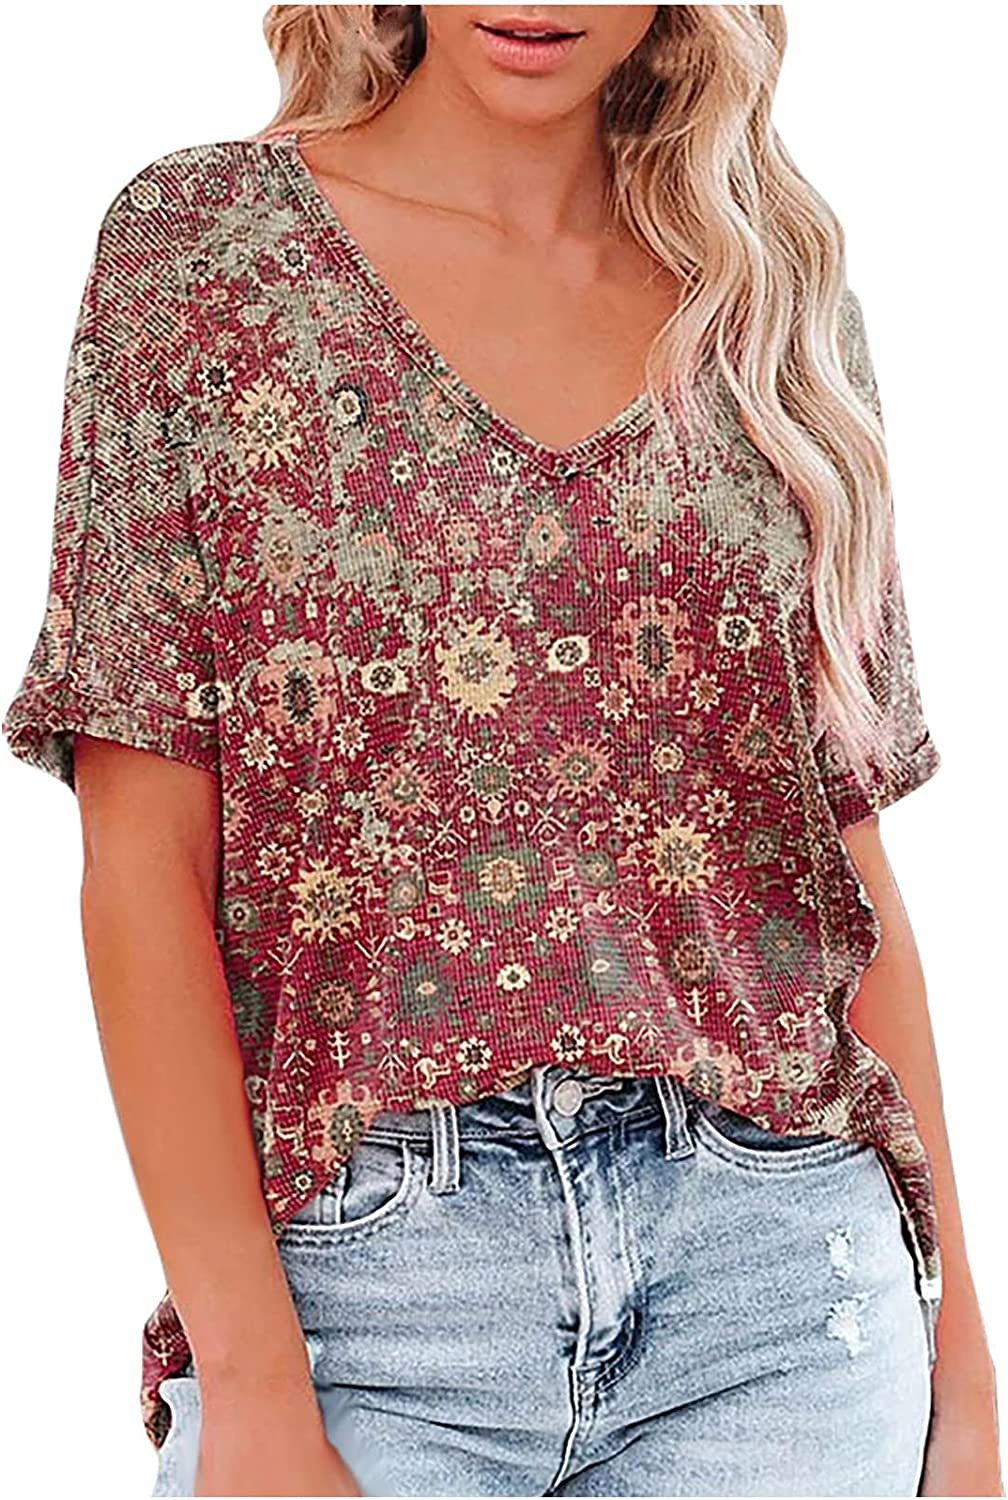 Women's Summer Casual T Shirt Fashion V Neck Short Sleeve Classical Graphic Printed Blouse Tops